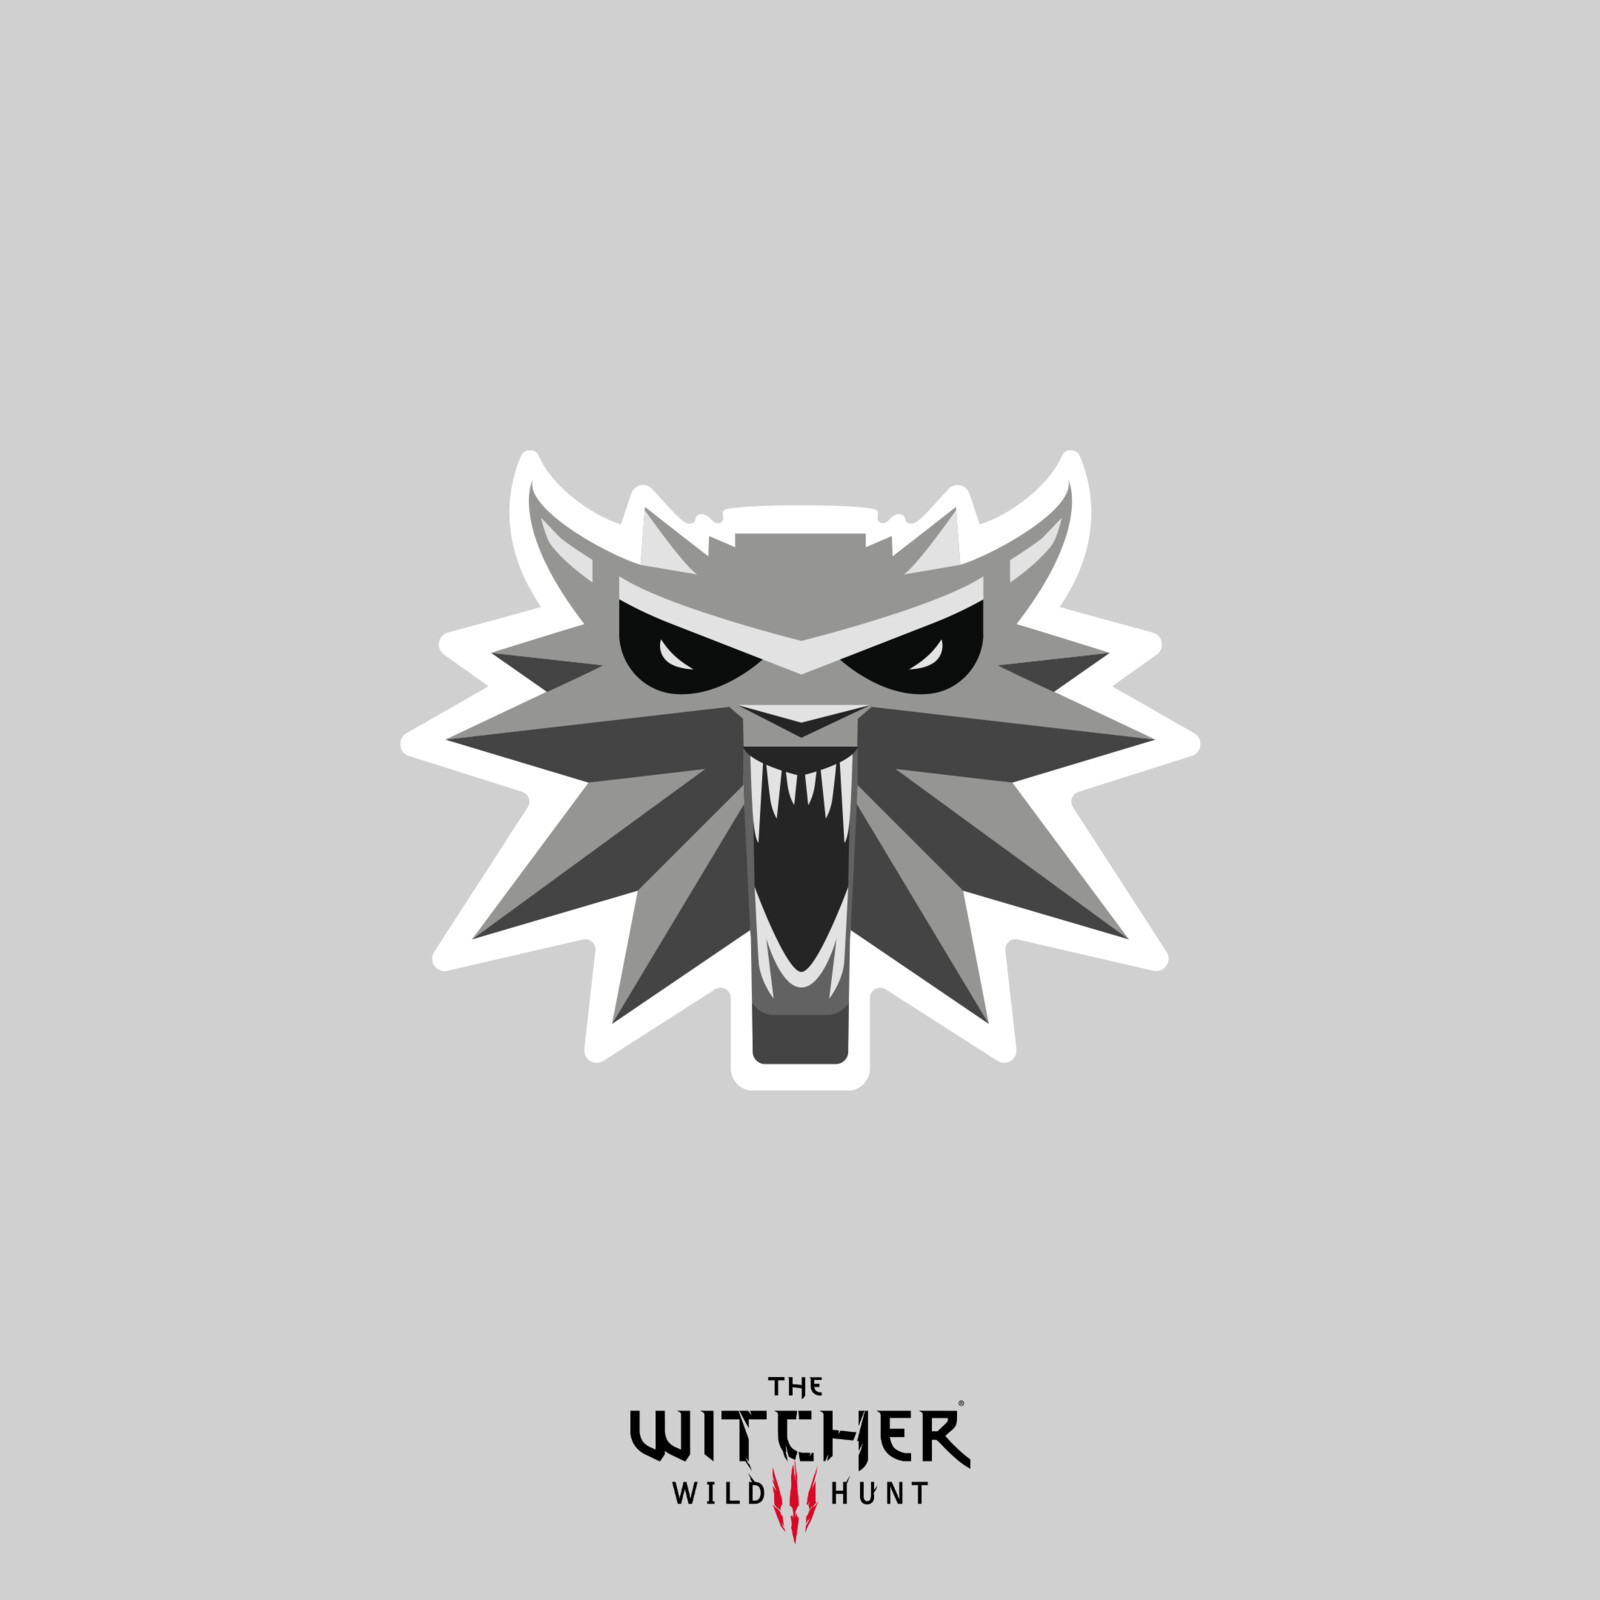 CD Projekt Red - The Witcher 3 medallions - Discord emojis